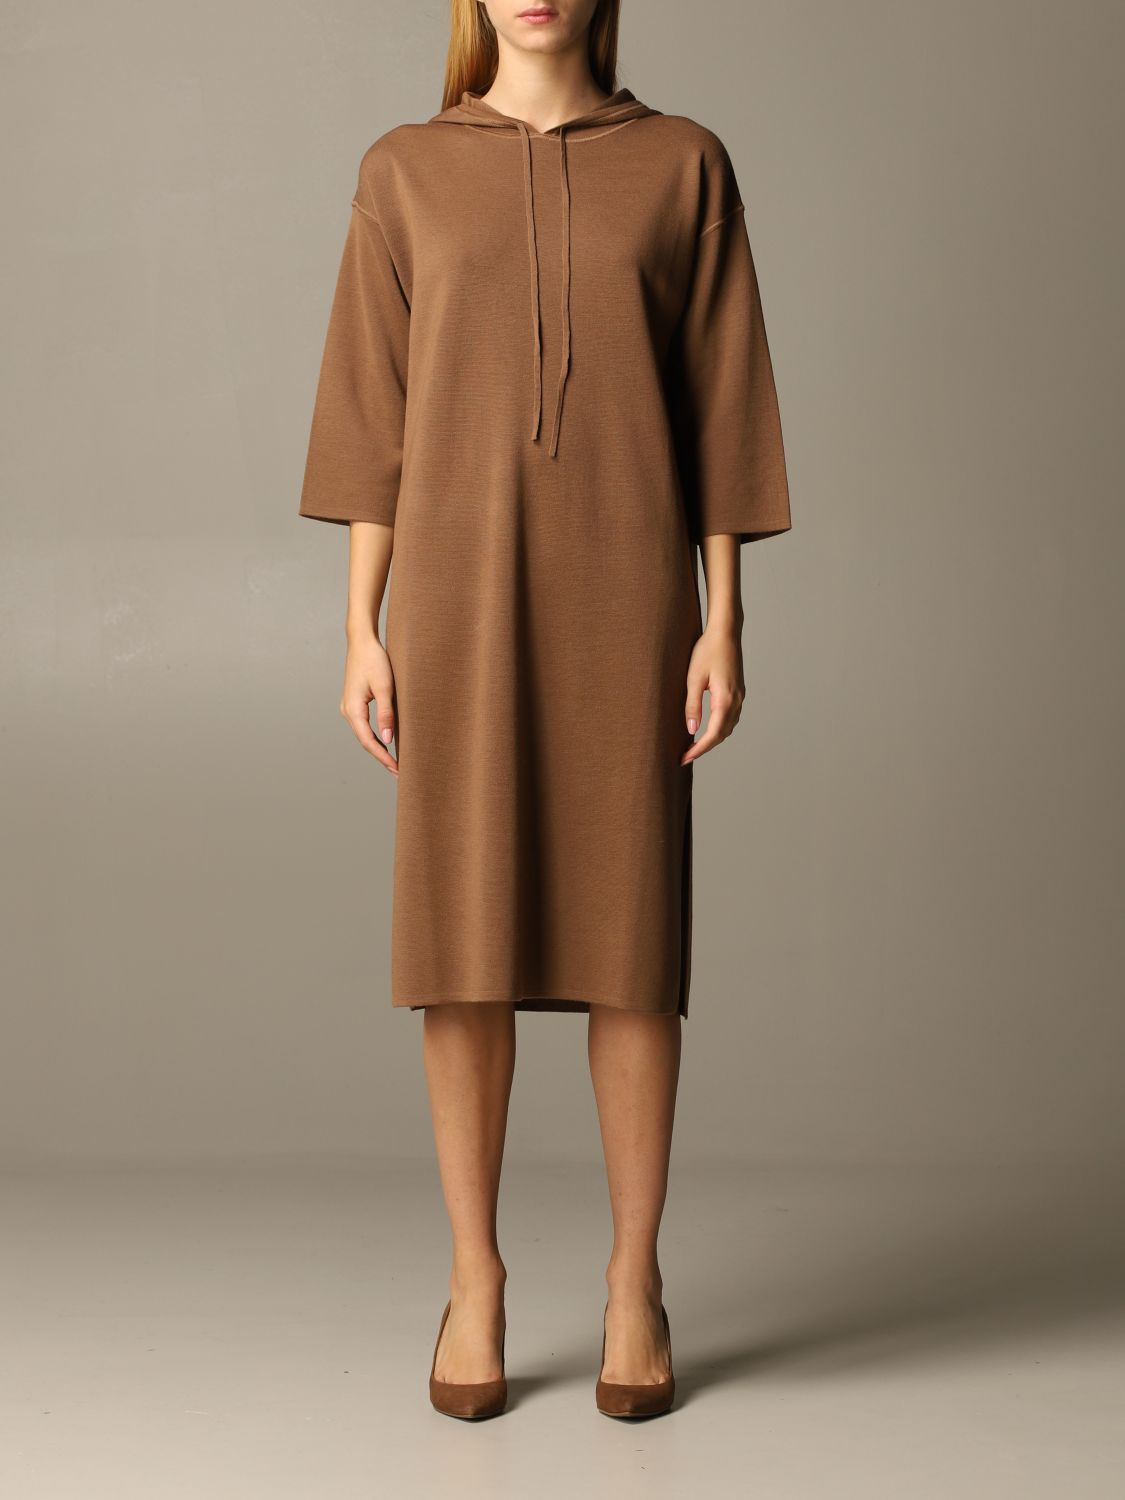 Dress Max Mara: Dress women Max Mara tobacco 1